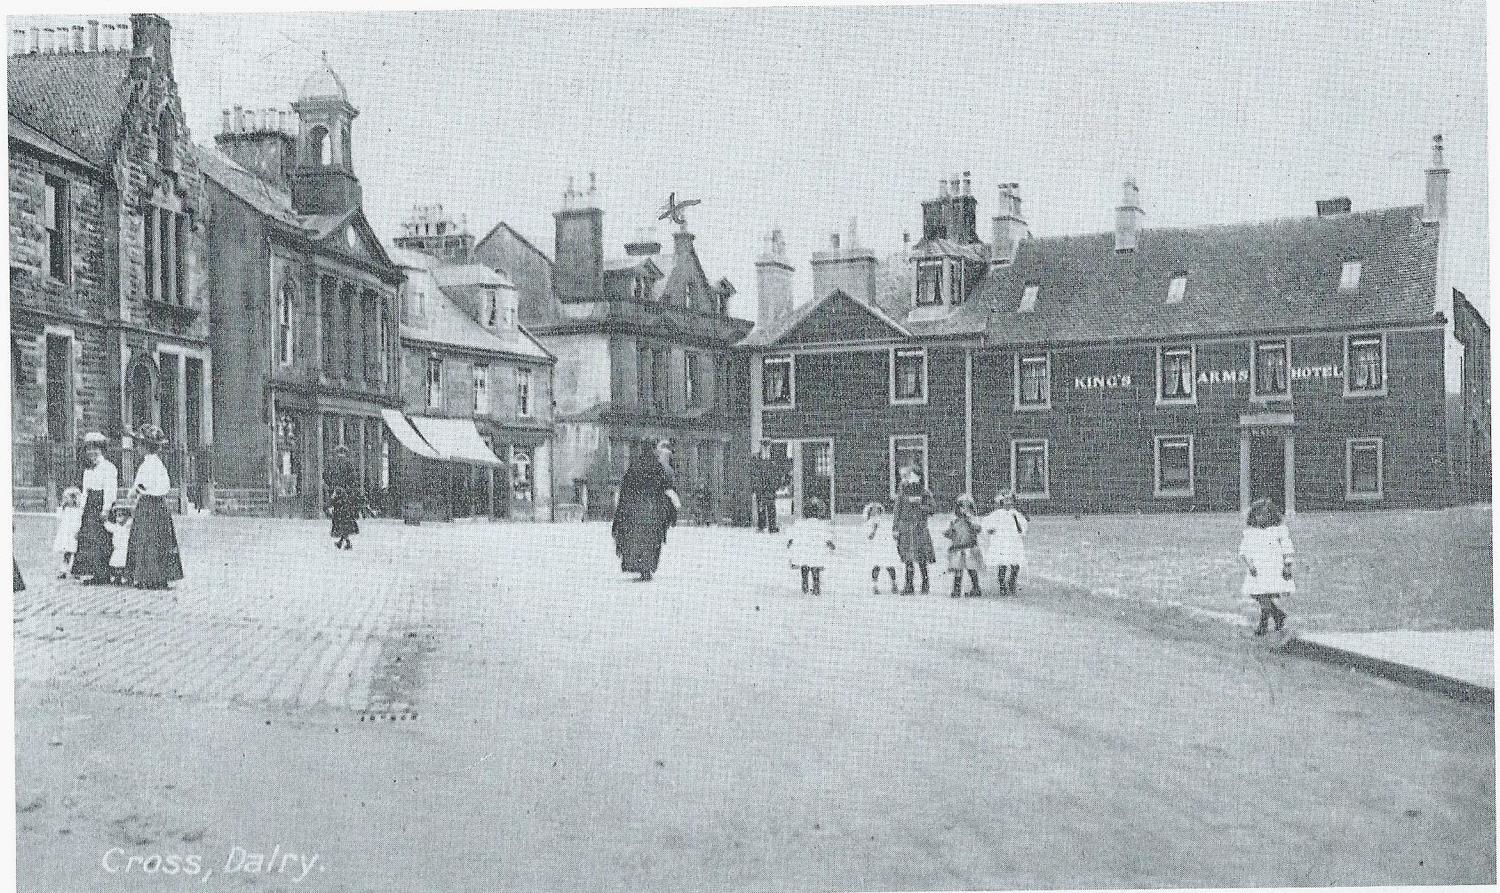 Dalry Square, the Parish school used to be on the site and is now the local library, on left. The King's Arms on right hand side was once the town's main coaching inn.